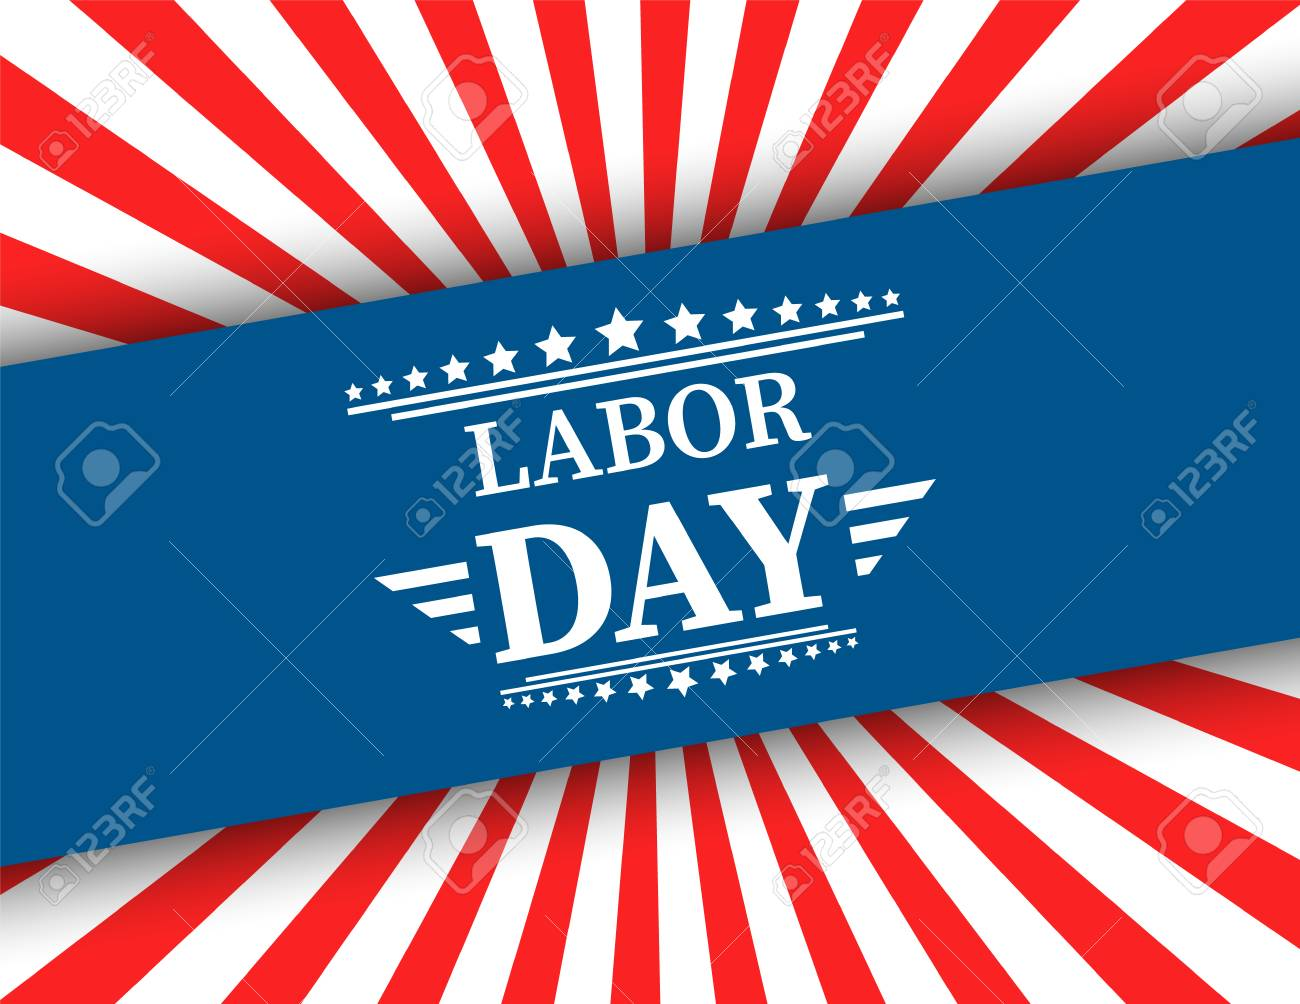 Waving American flag with typography Labor Day, September 7th, United state of America, American Labor day design. Beautiful USA flag Composition. Labor Day poster design - 106353425